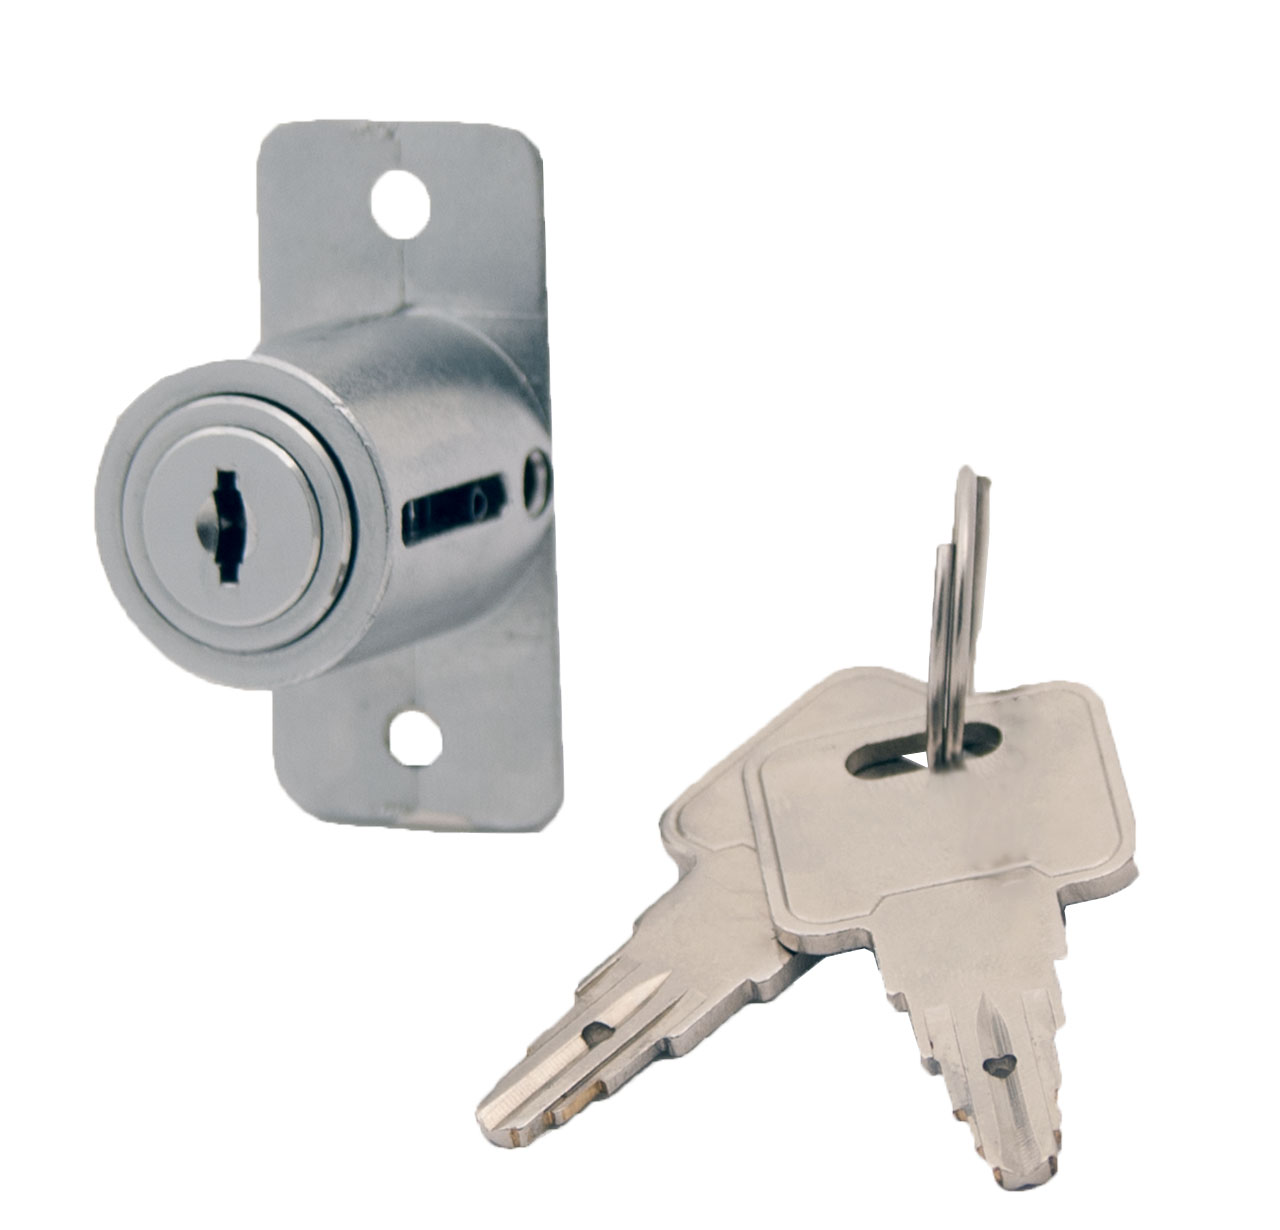 High Security Pagoda Plunger Lock, Keyed Different